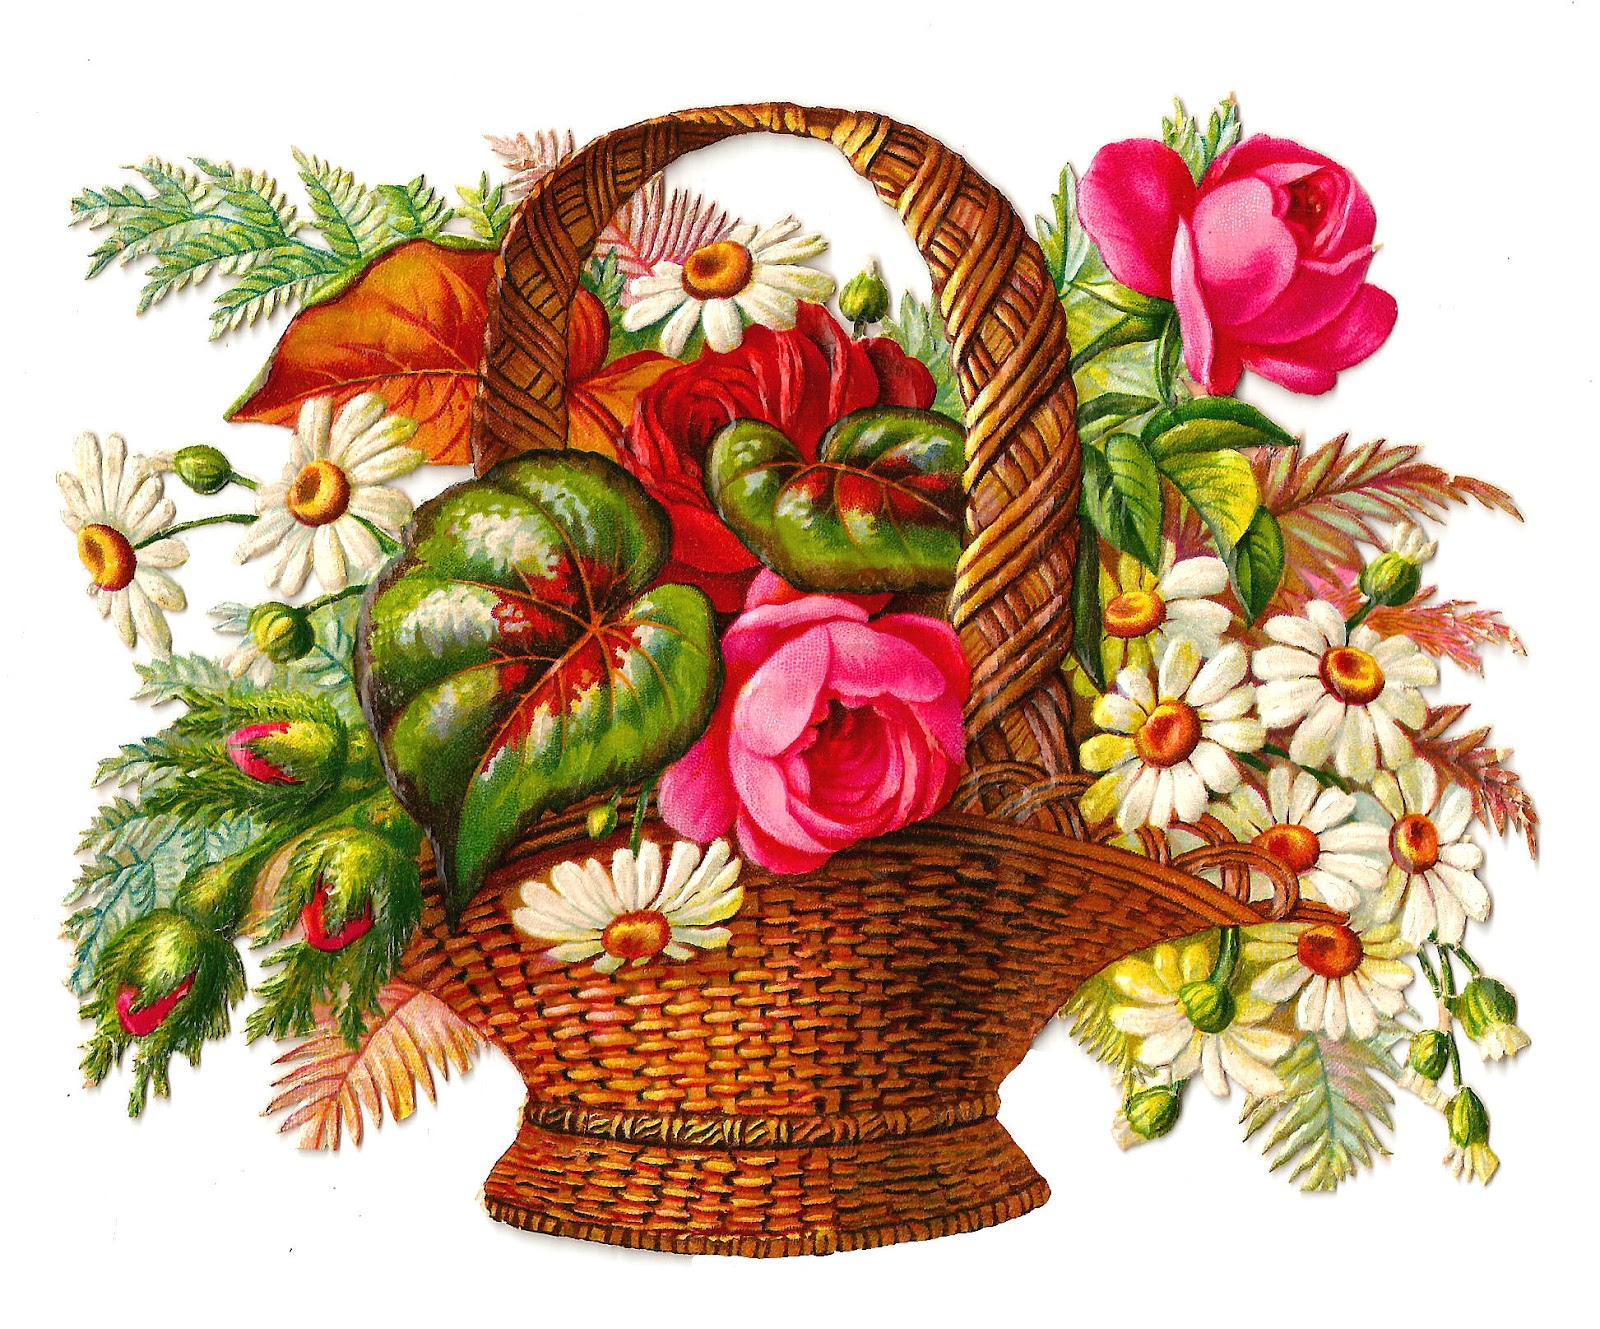 Free Images of Flower Bouquets.